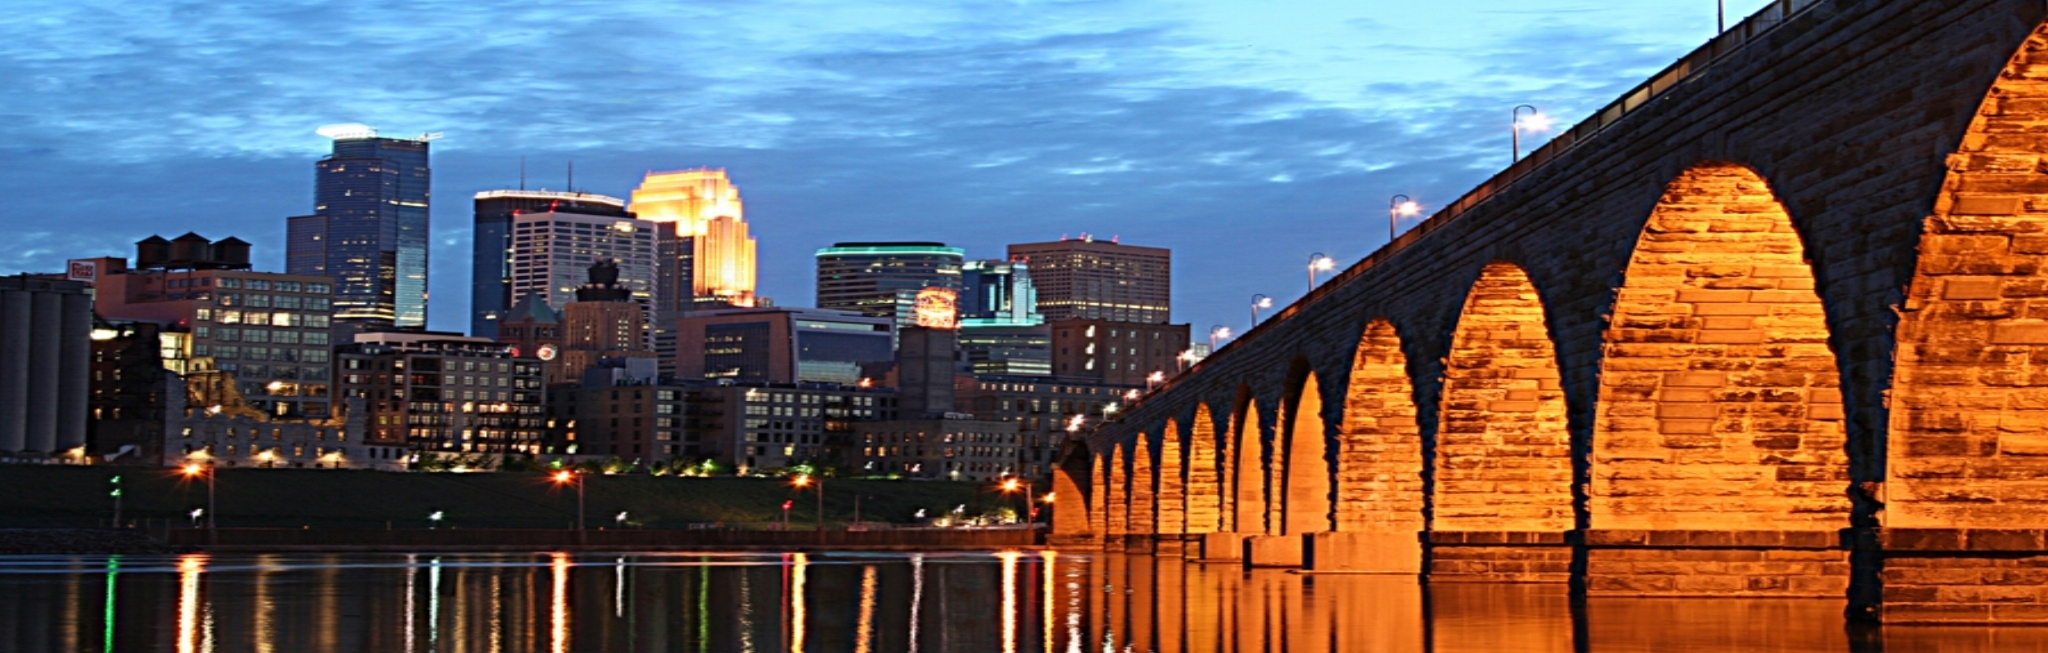 01_Minneapolis_Skyline_Photography_Stone_Arch_Bridge.jpg